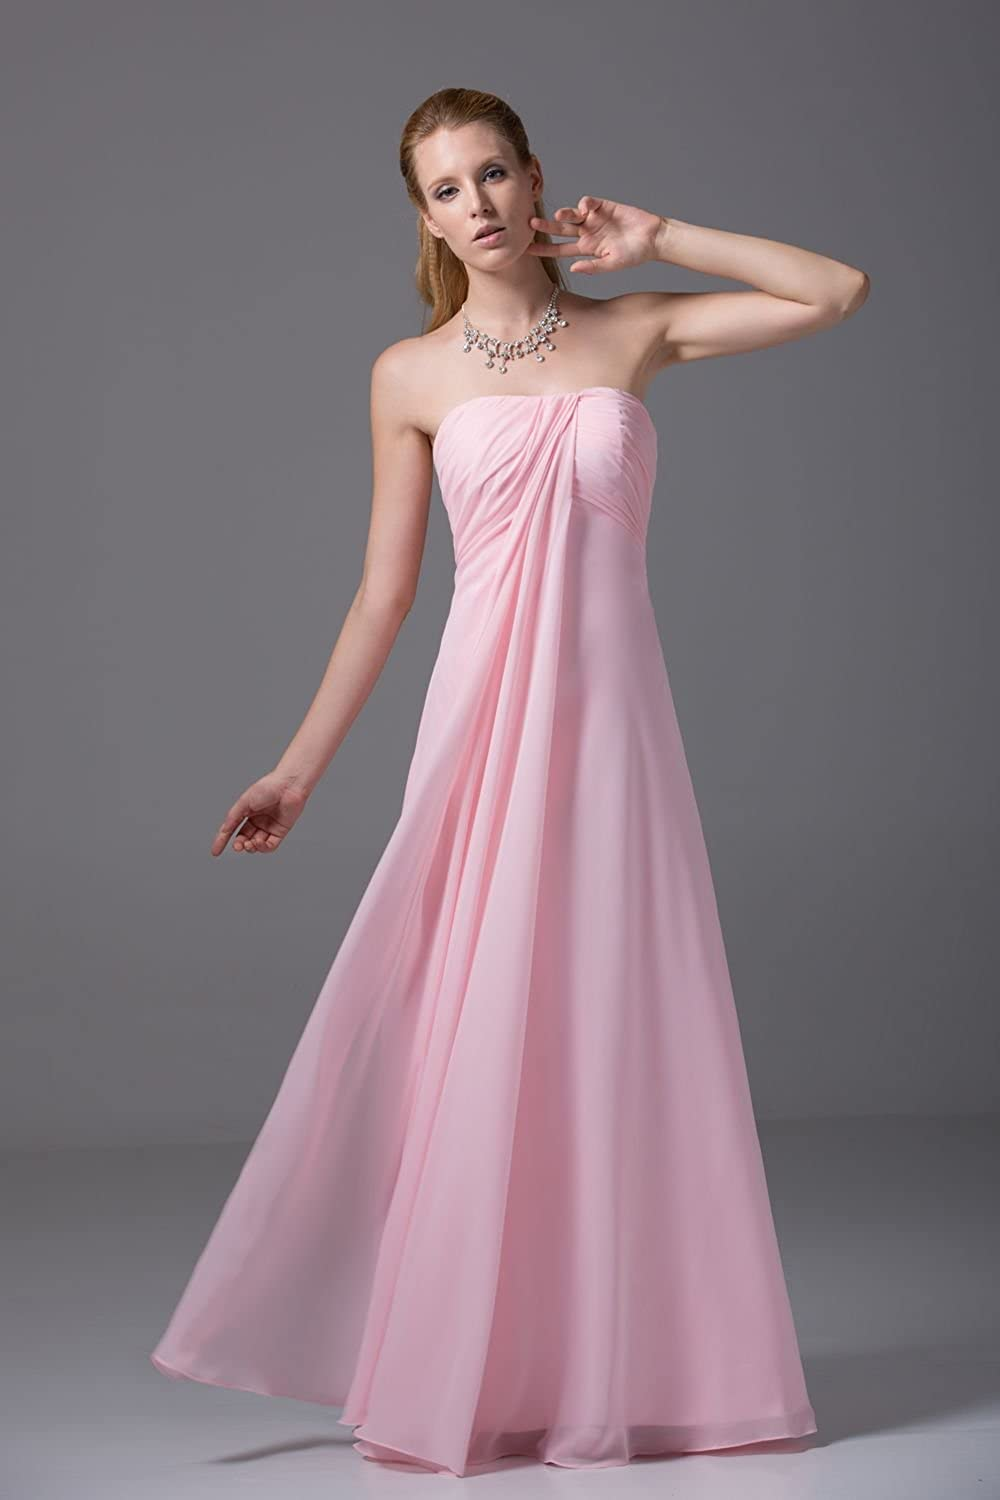 Bridal_Mall Women's Strapless Pleated A-line Bridesmaid Dress